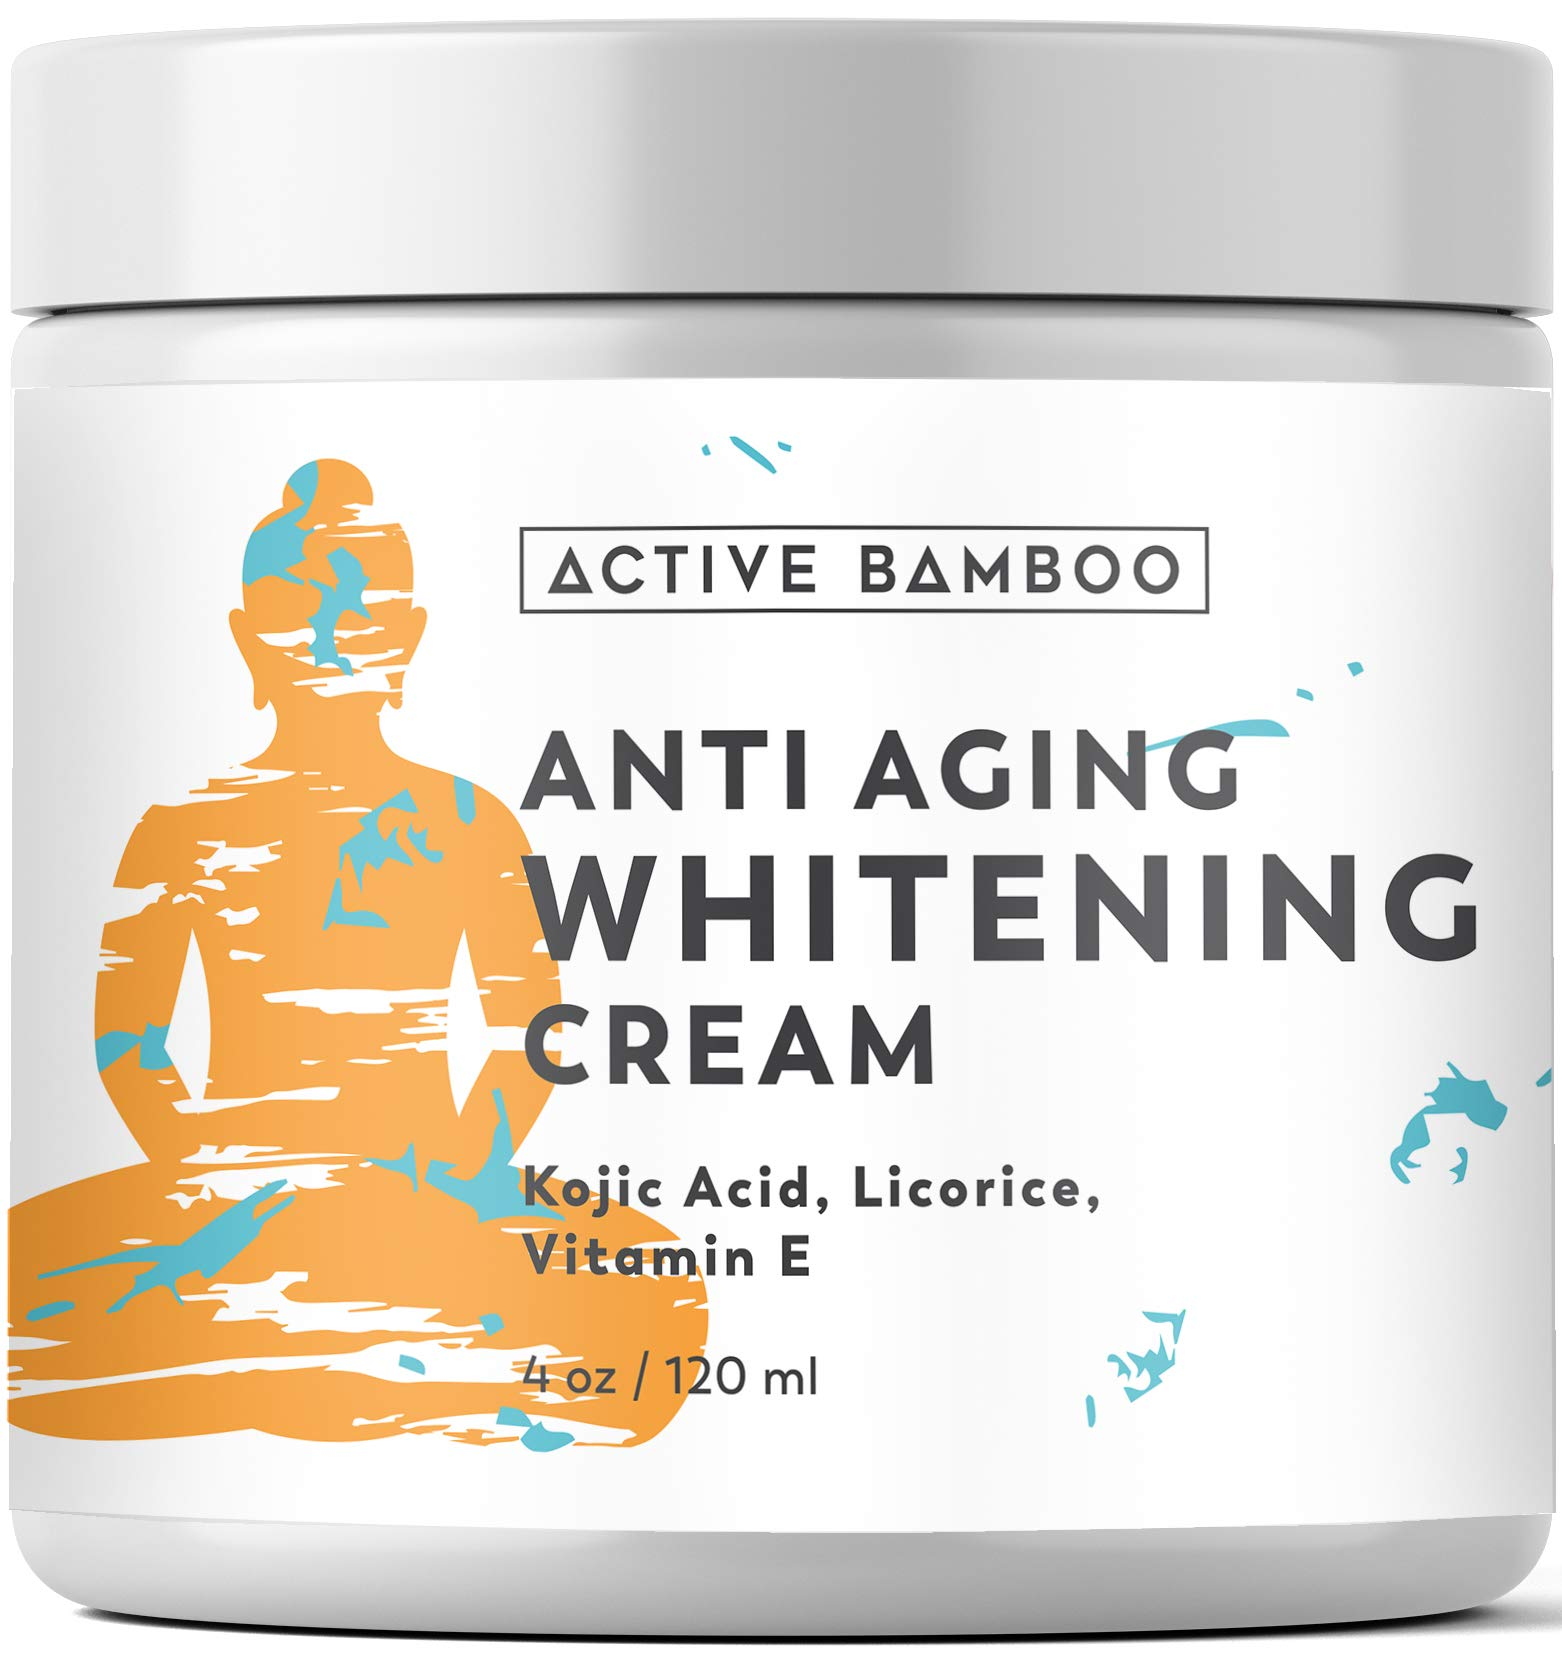 Radiance Cream. Anti Aging Skin Radiance Glow Cream. Dark Spot Corrector as Day Night Moisturizing Cream. 4 Oz